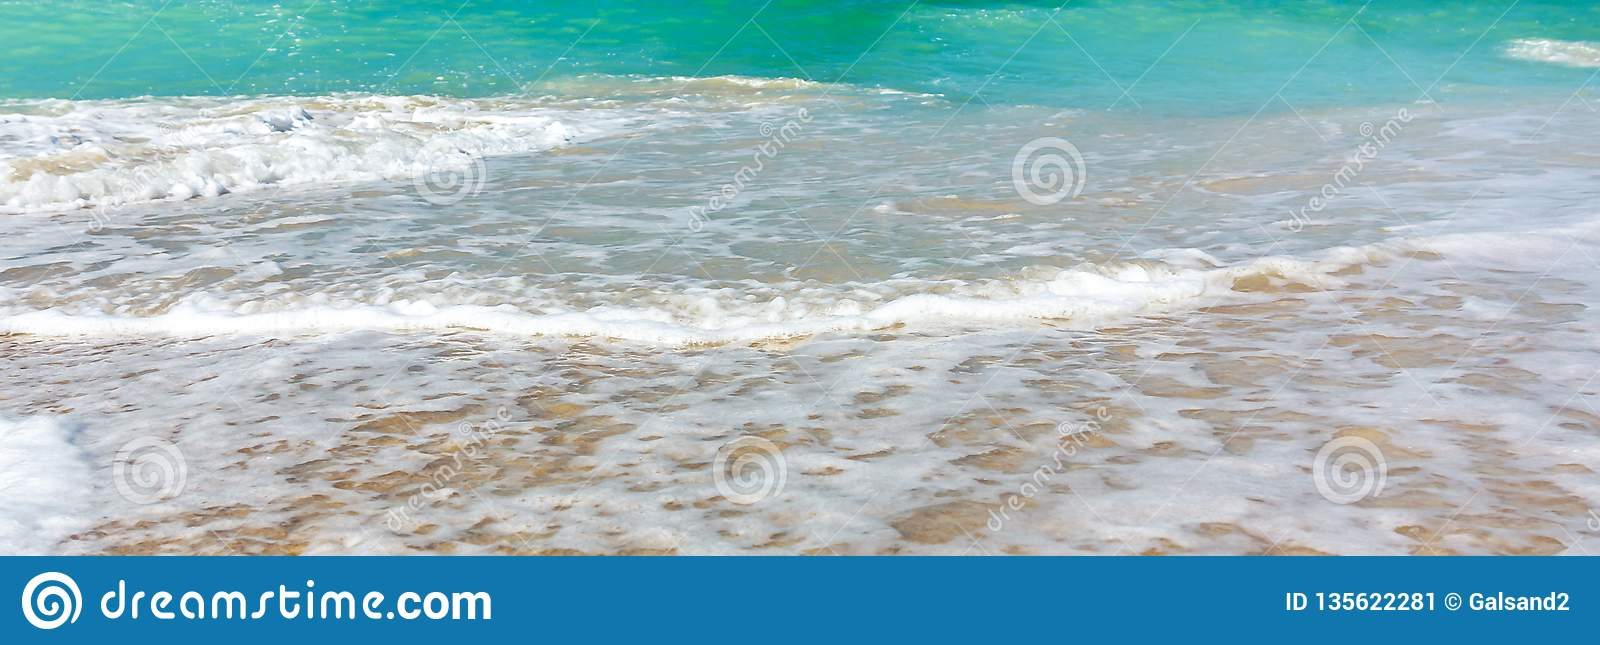 Wave surf on the sea coast, clean sea shore and turquoise water, horizontal panoramic image, background for banner